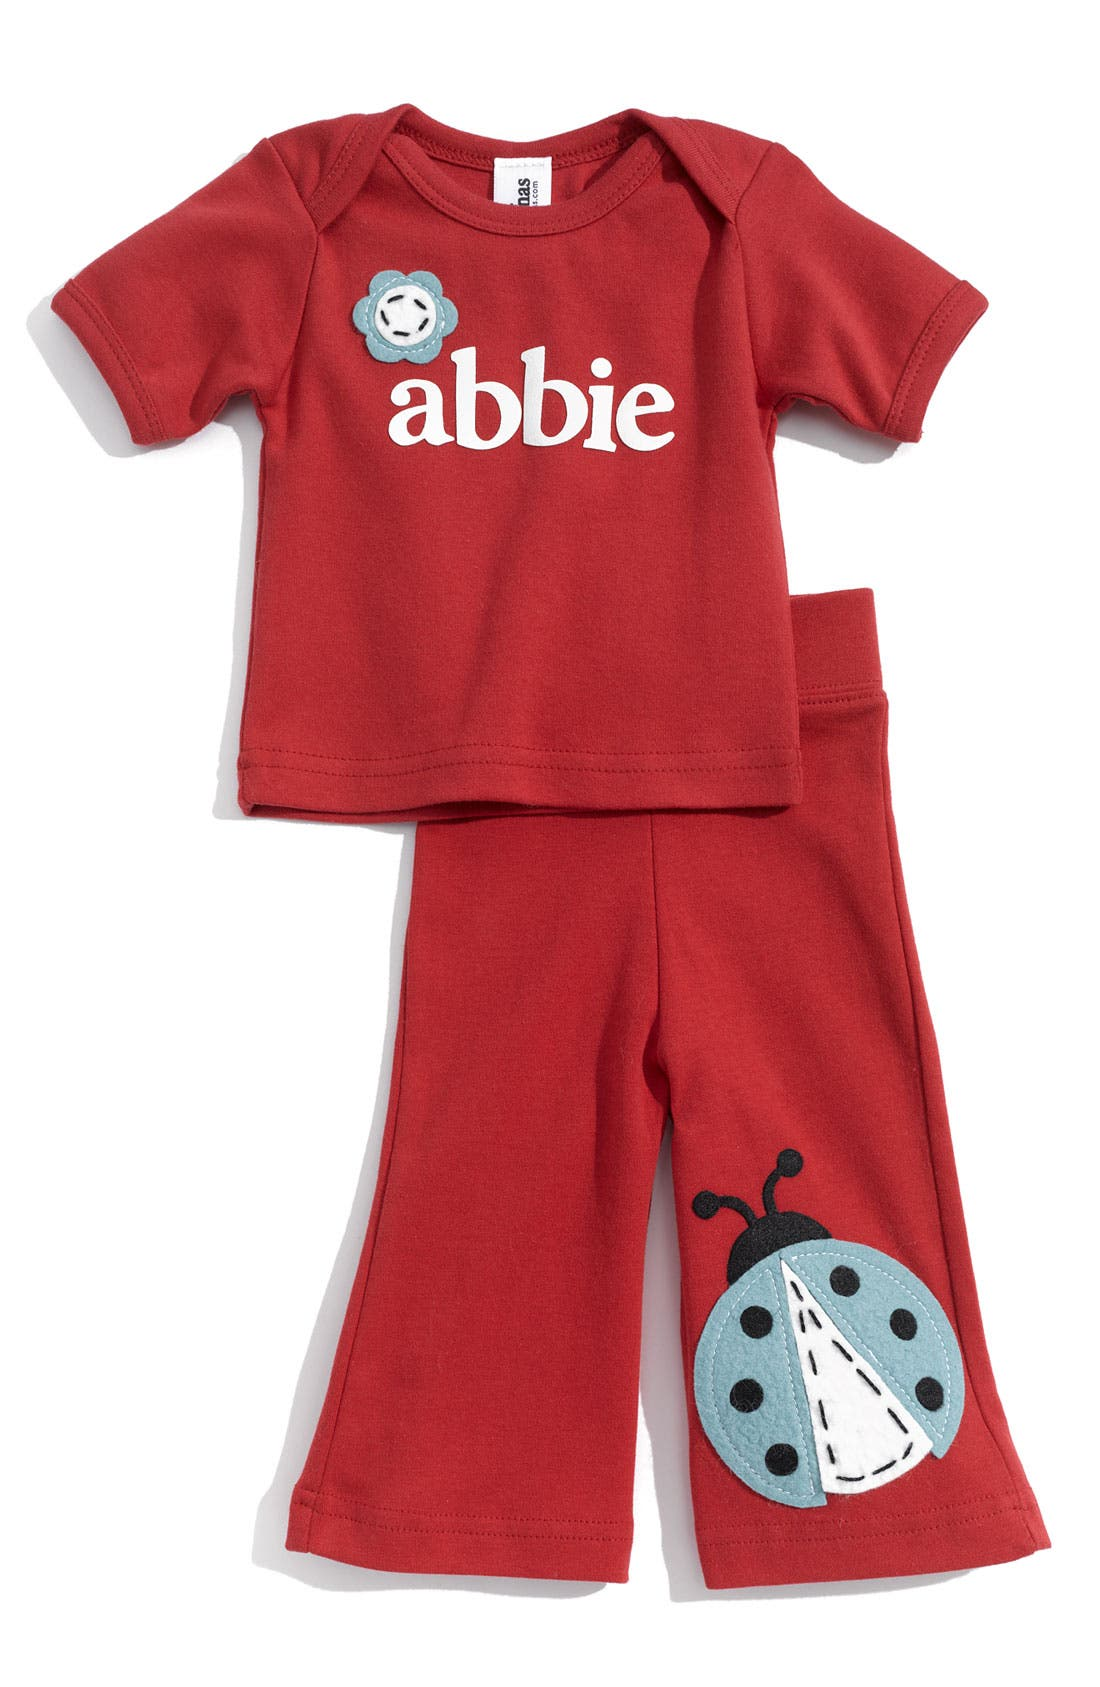 Main Image - Two Tinas Personalized Tee & Pants Set (Baby)